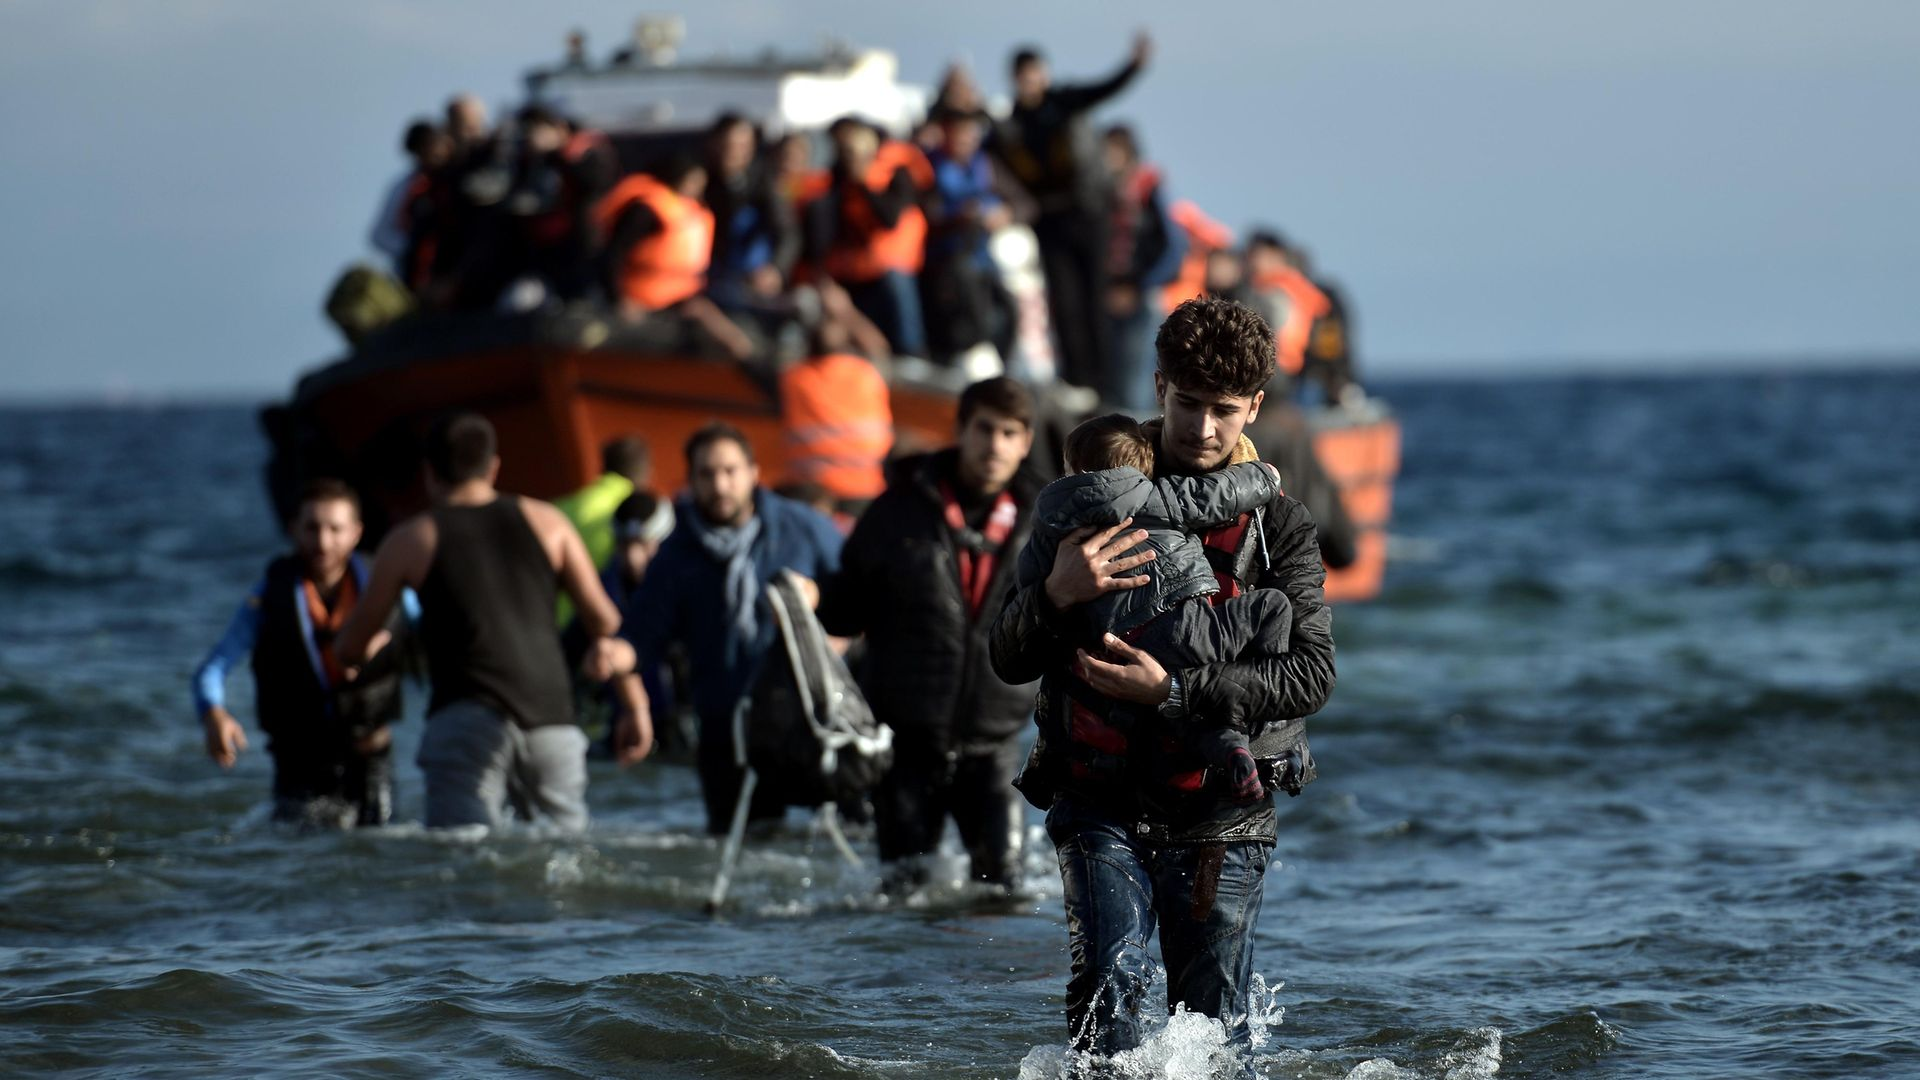 Migrants arrive on the Greek island of Lesbos after crossing the Aegean Sea from Turkey in 2015 - Credit: AFP via Getty Images